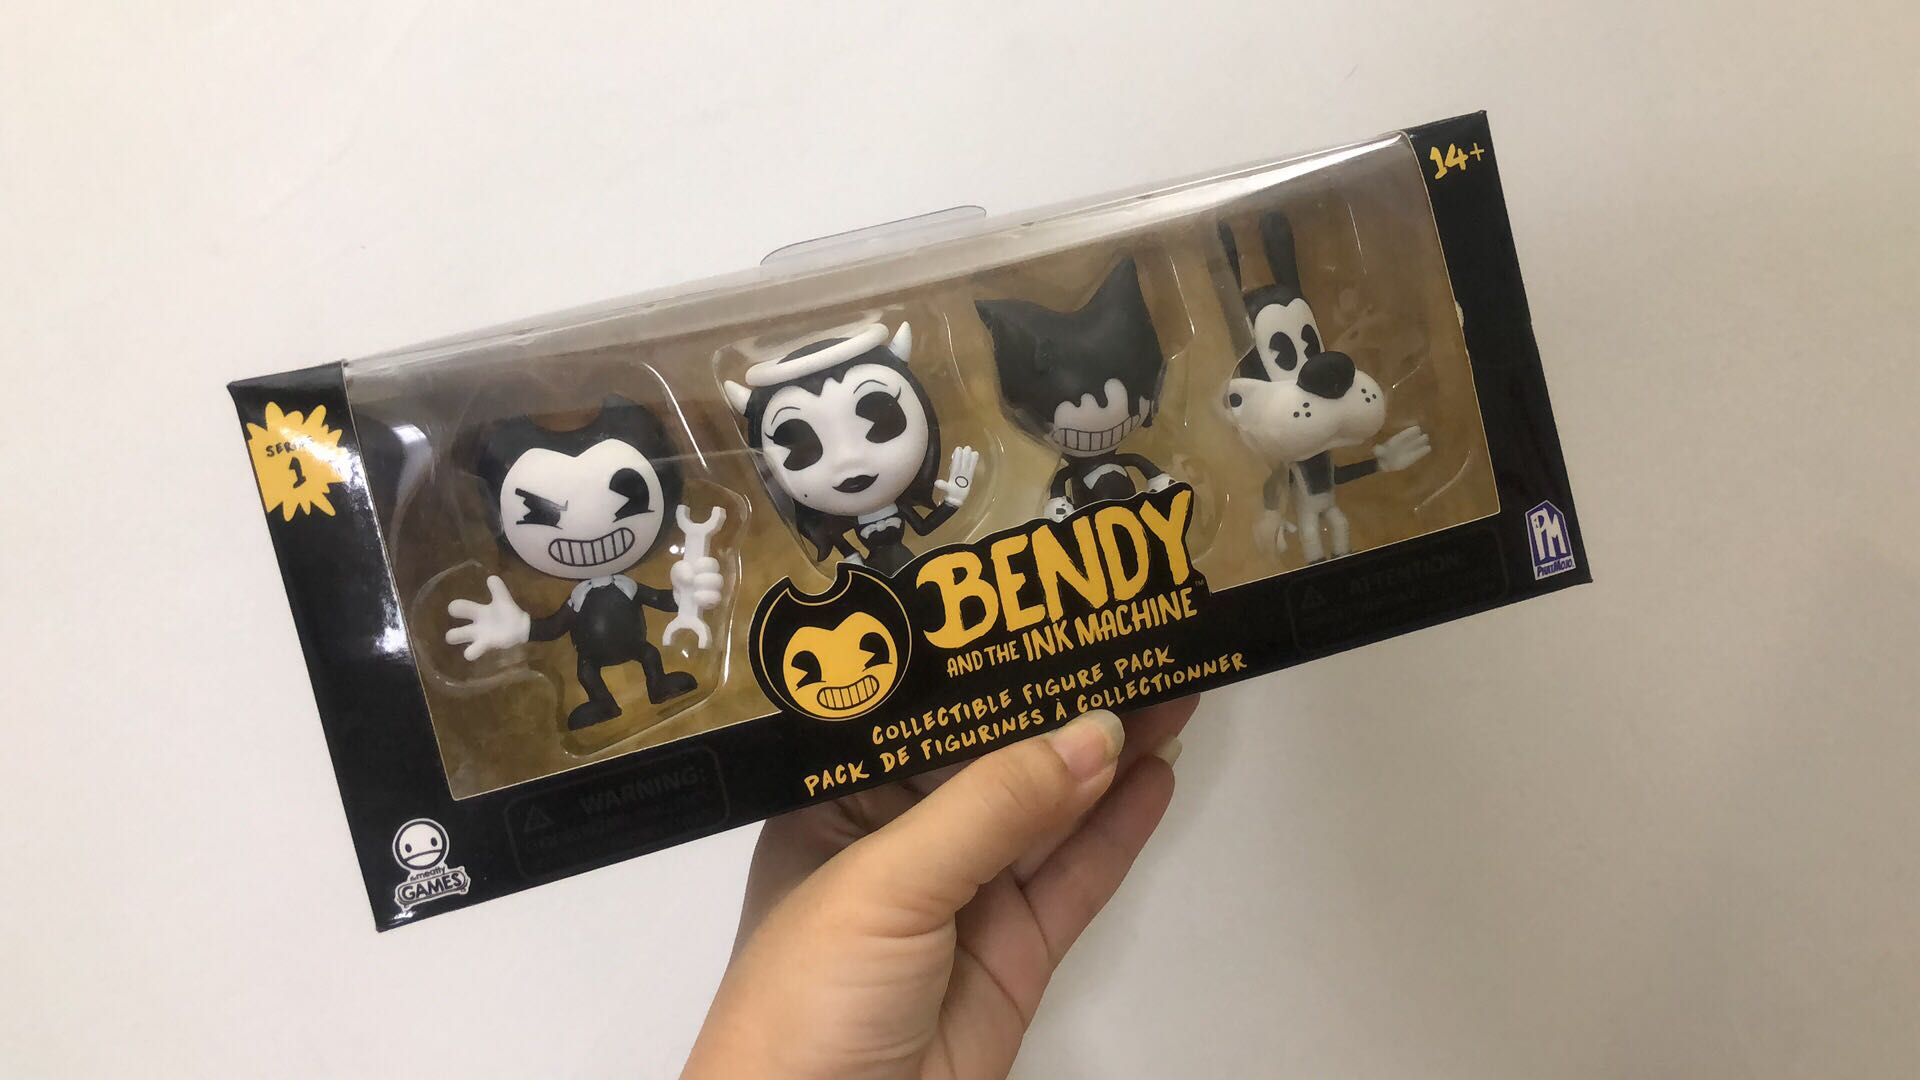 4 Figures Bendy and the Ink Machine Collectible Figure Pack series 1